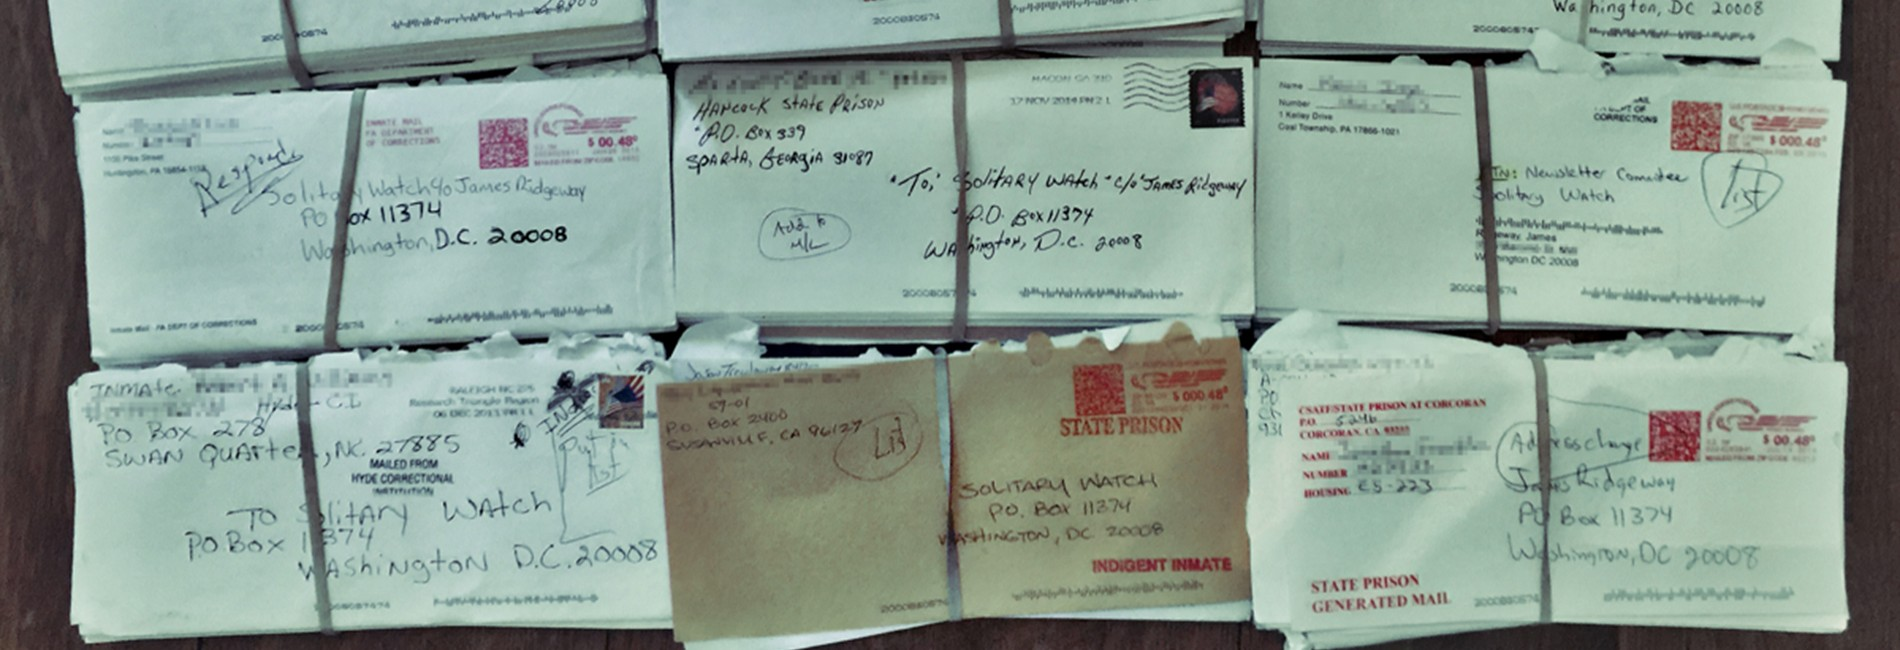 Letters to Solitary Watch